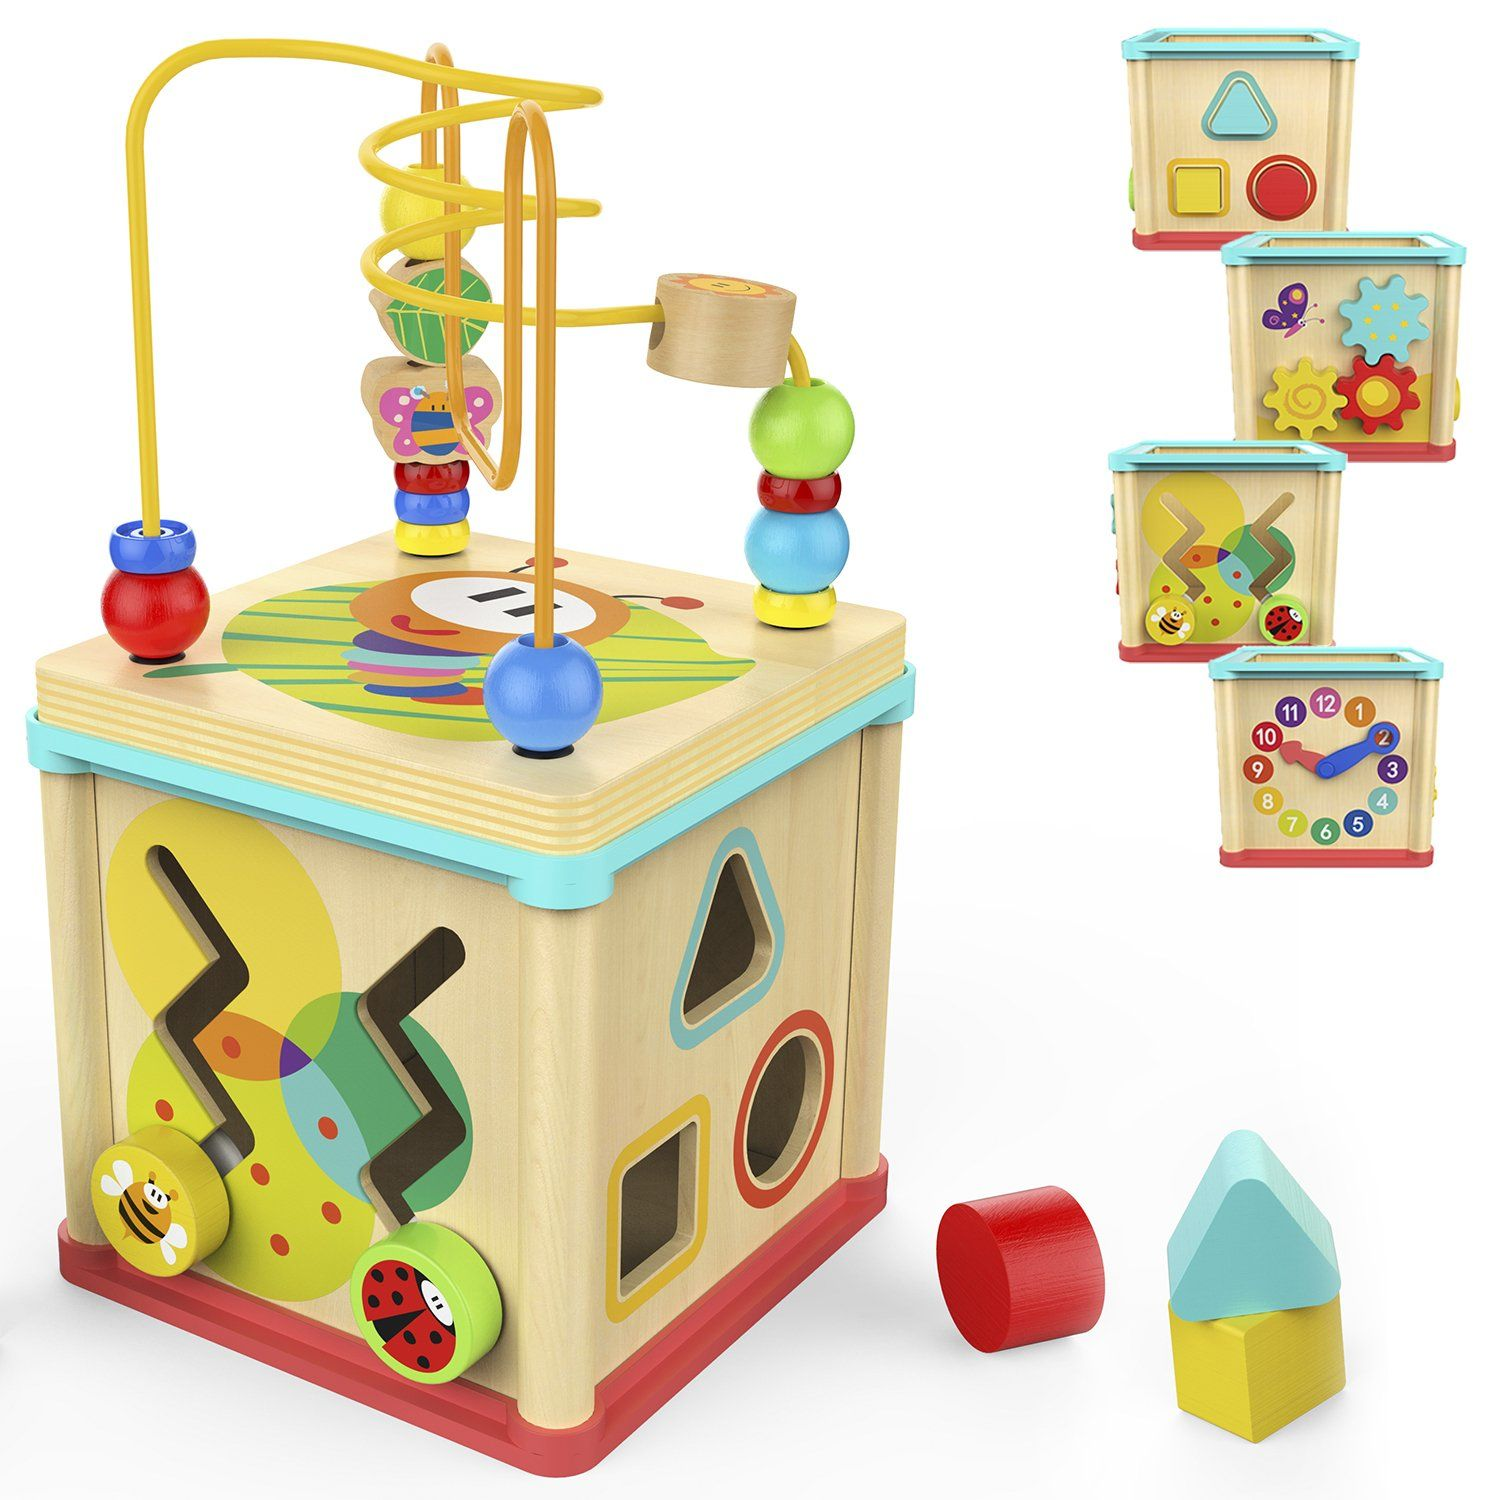 When Gaybie turns One TOP BRIGHT Activity Cube #baby